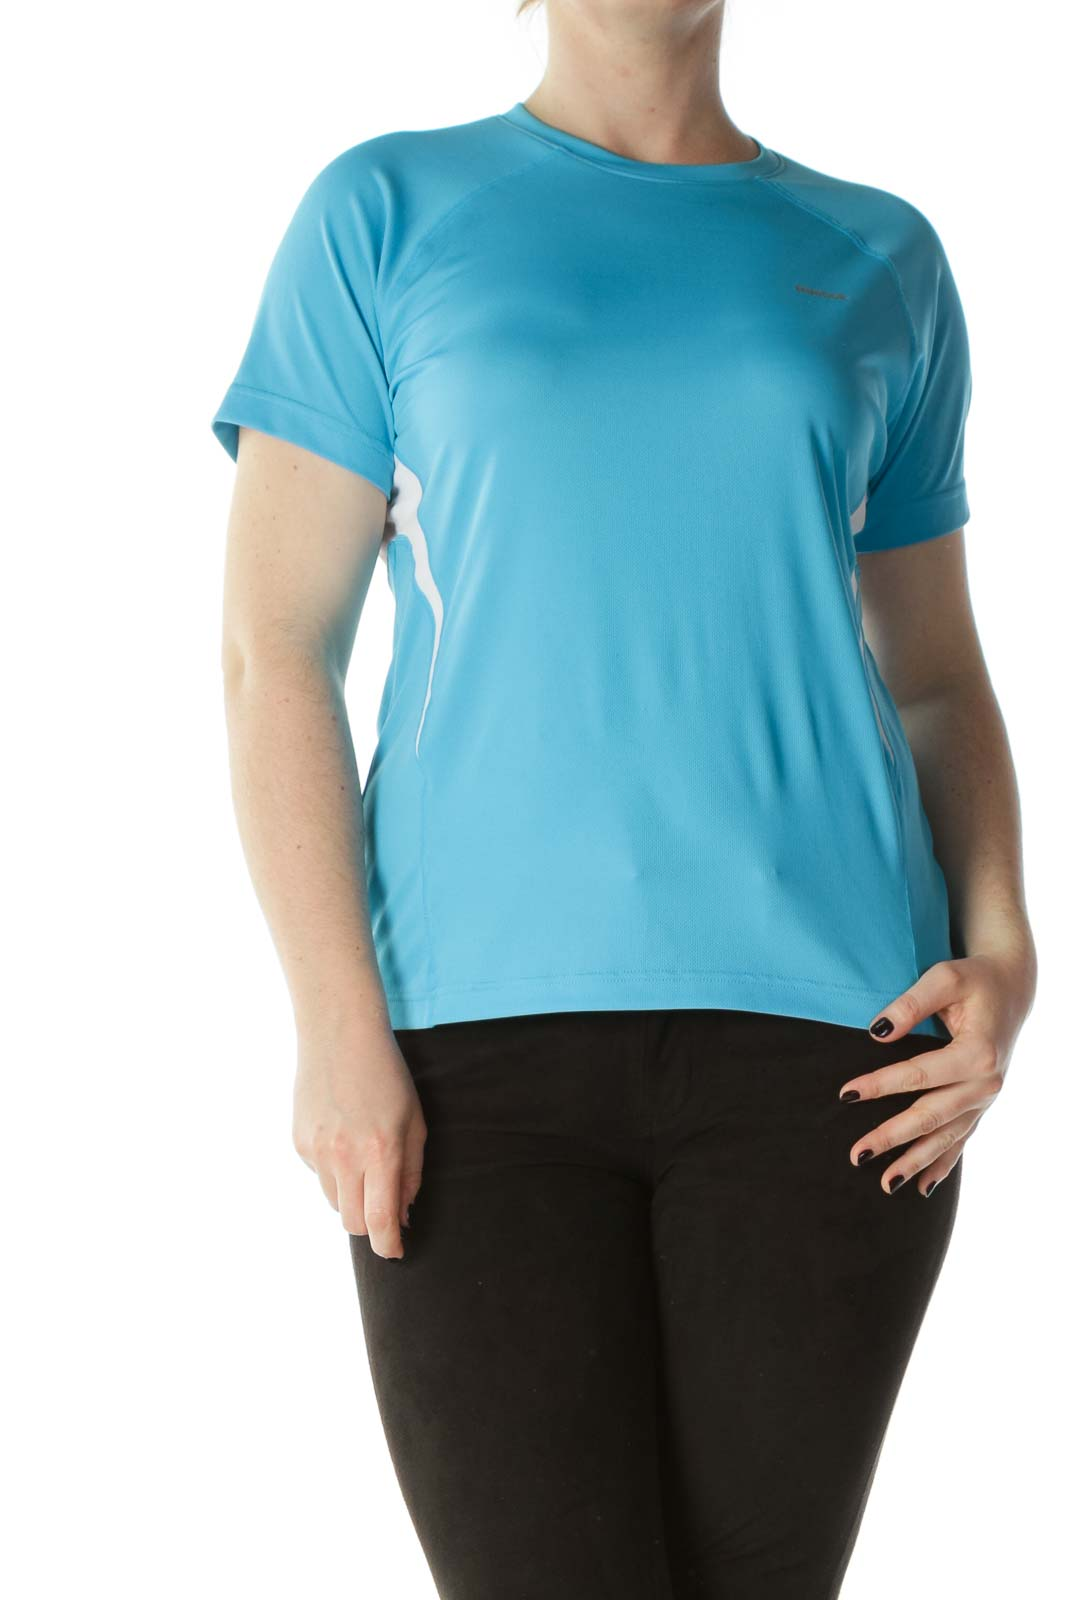 Blue White Round-Neck Short Sleeve Sports Top